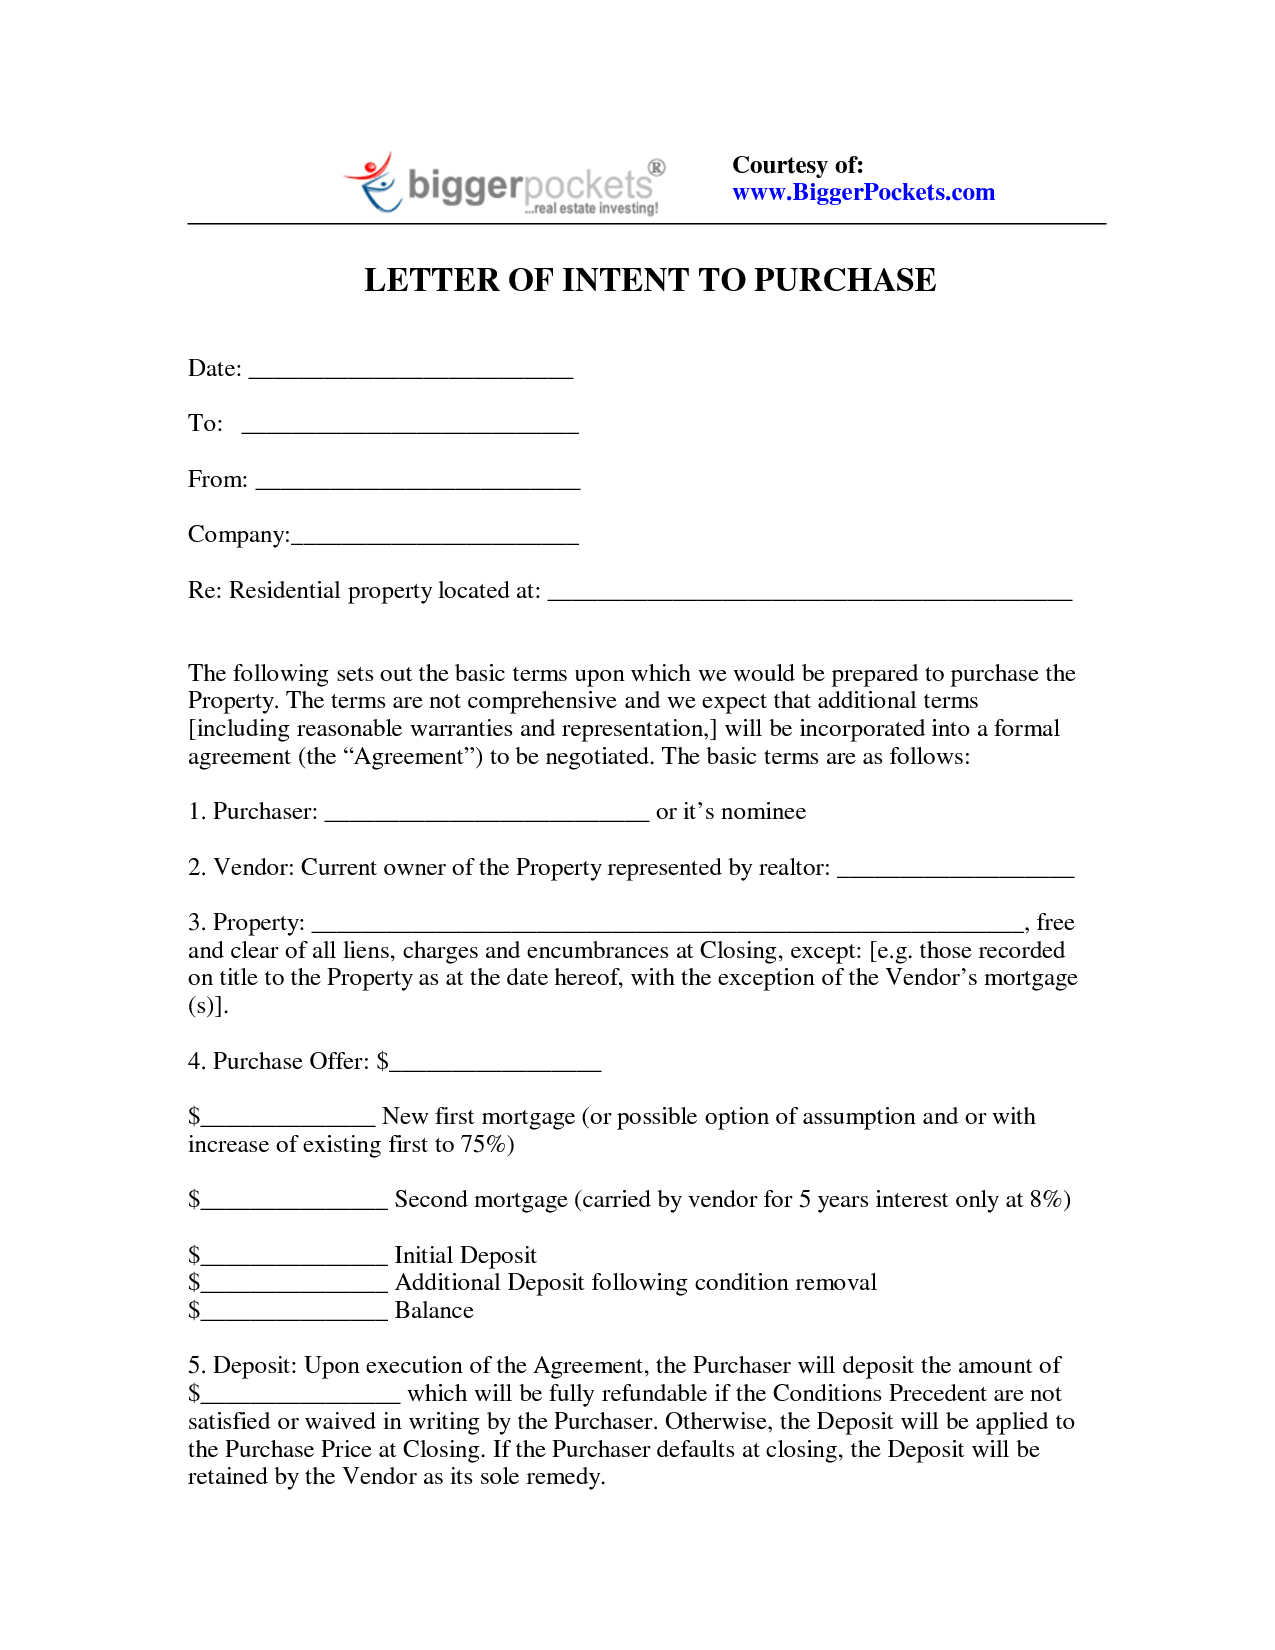 Letter Of Intent Investment Template - Sample Letter Intent to Purchaseesidential Property S Ideas